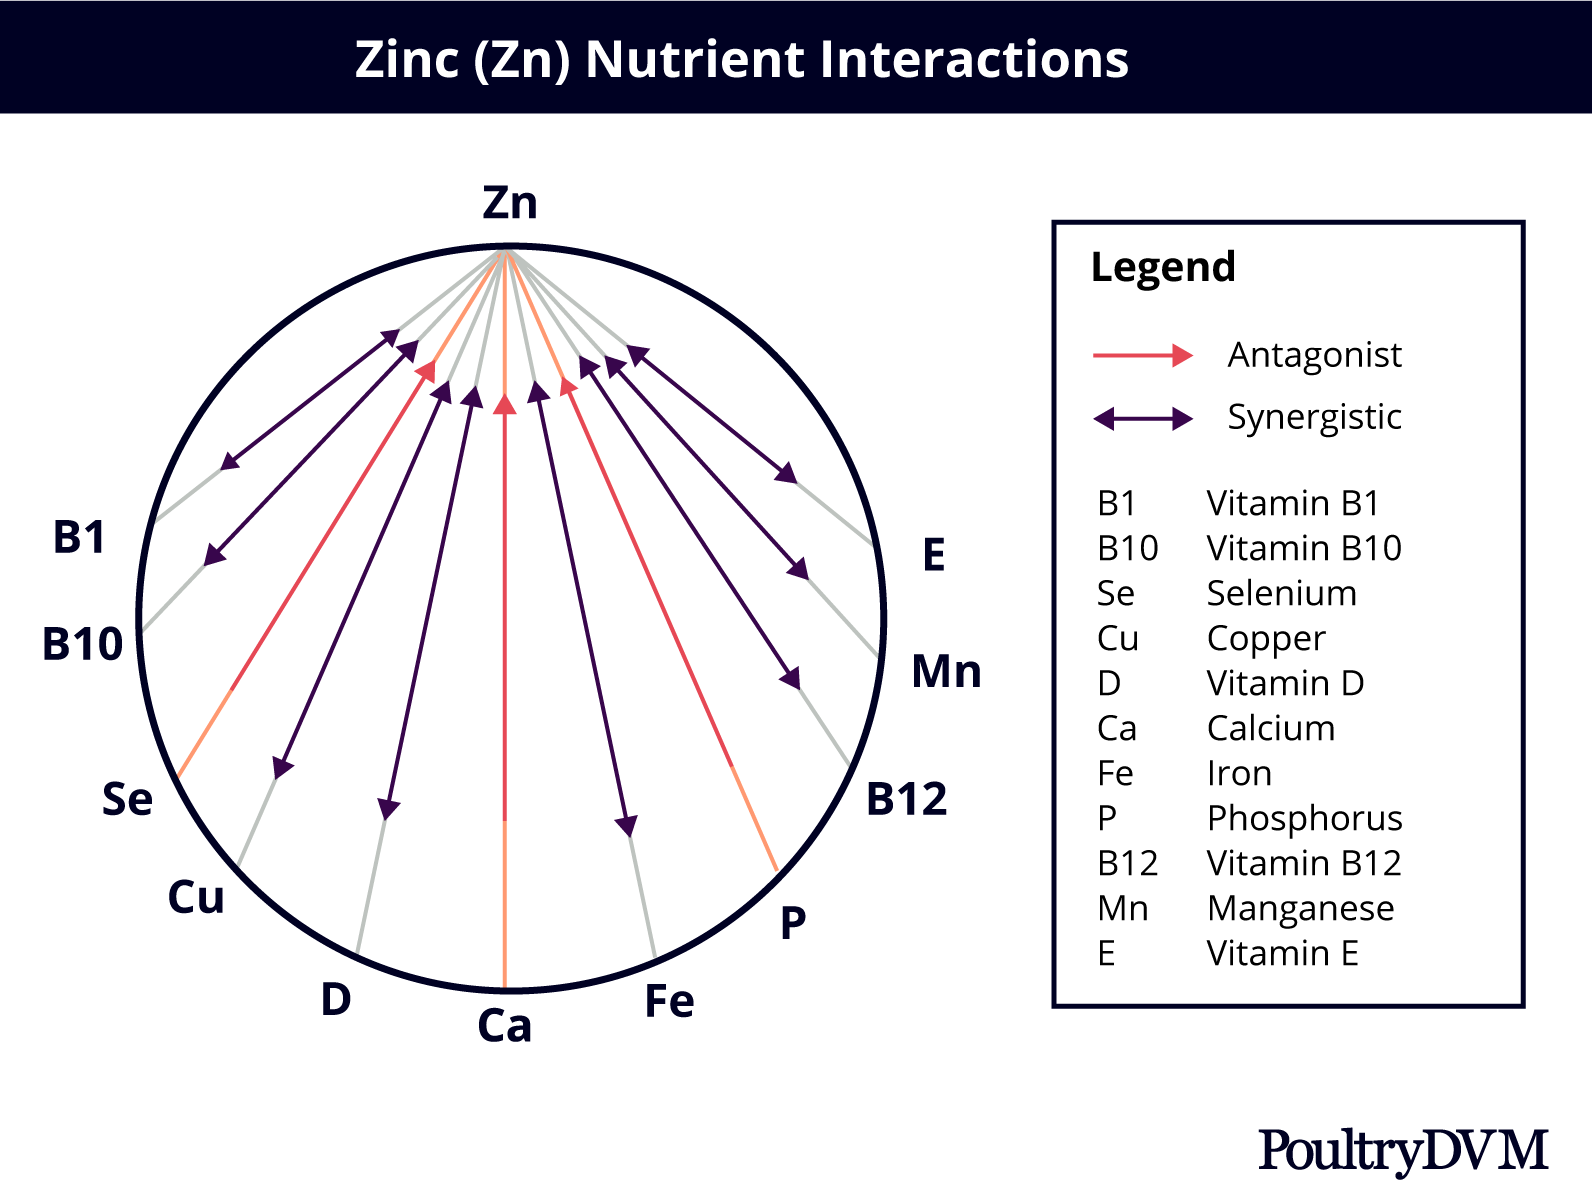 Zinc nutrient interactions